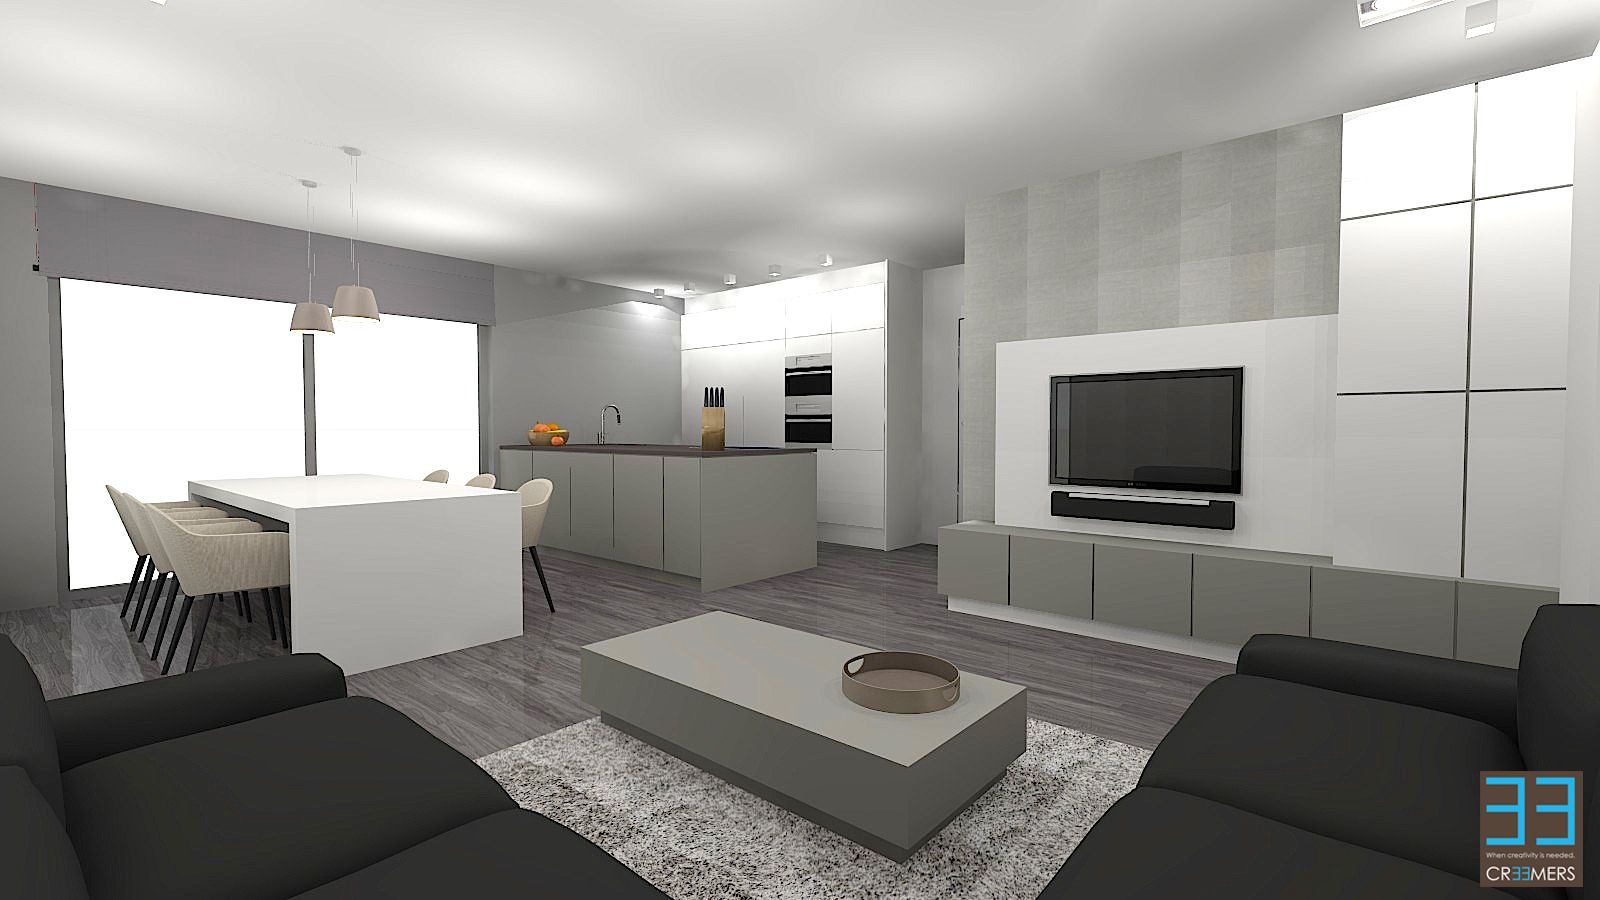 Modern interior renovation project with grey green and soft colors